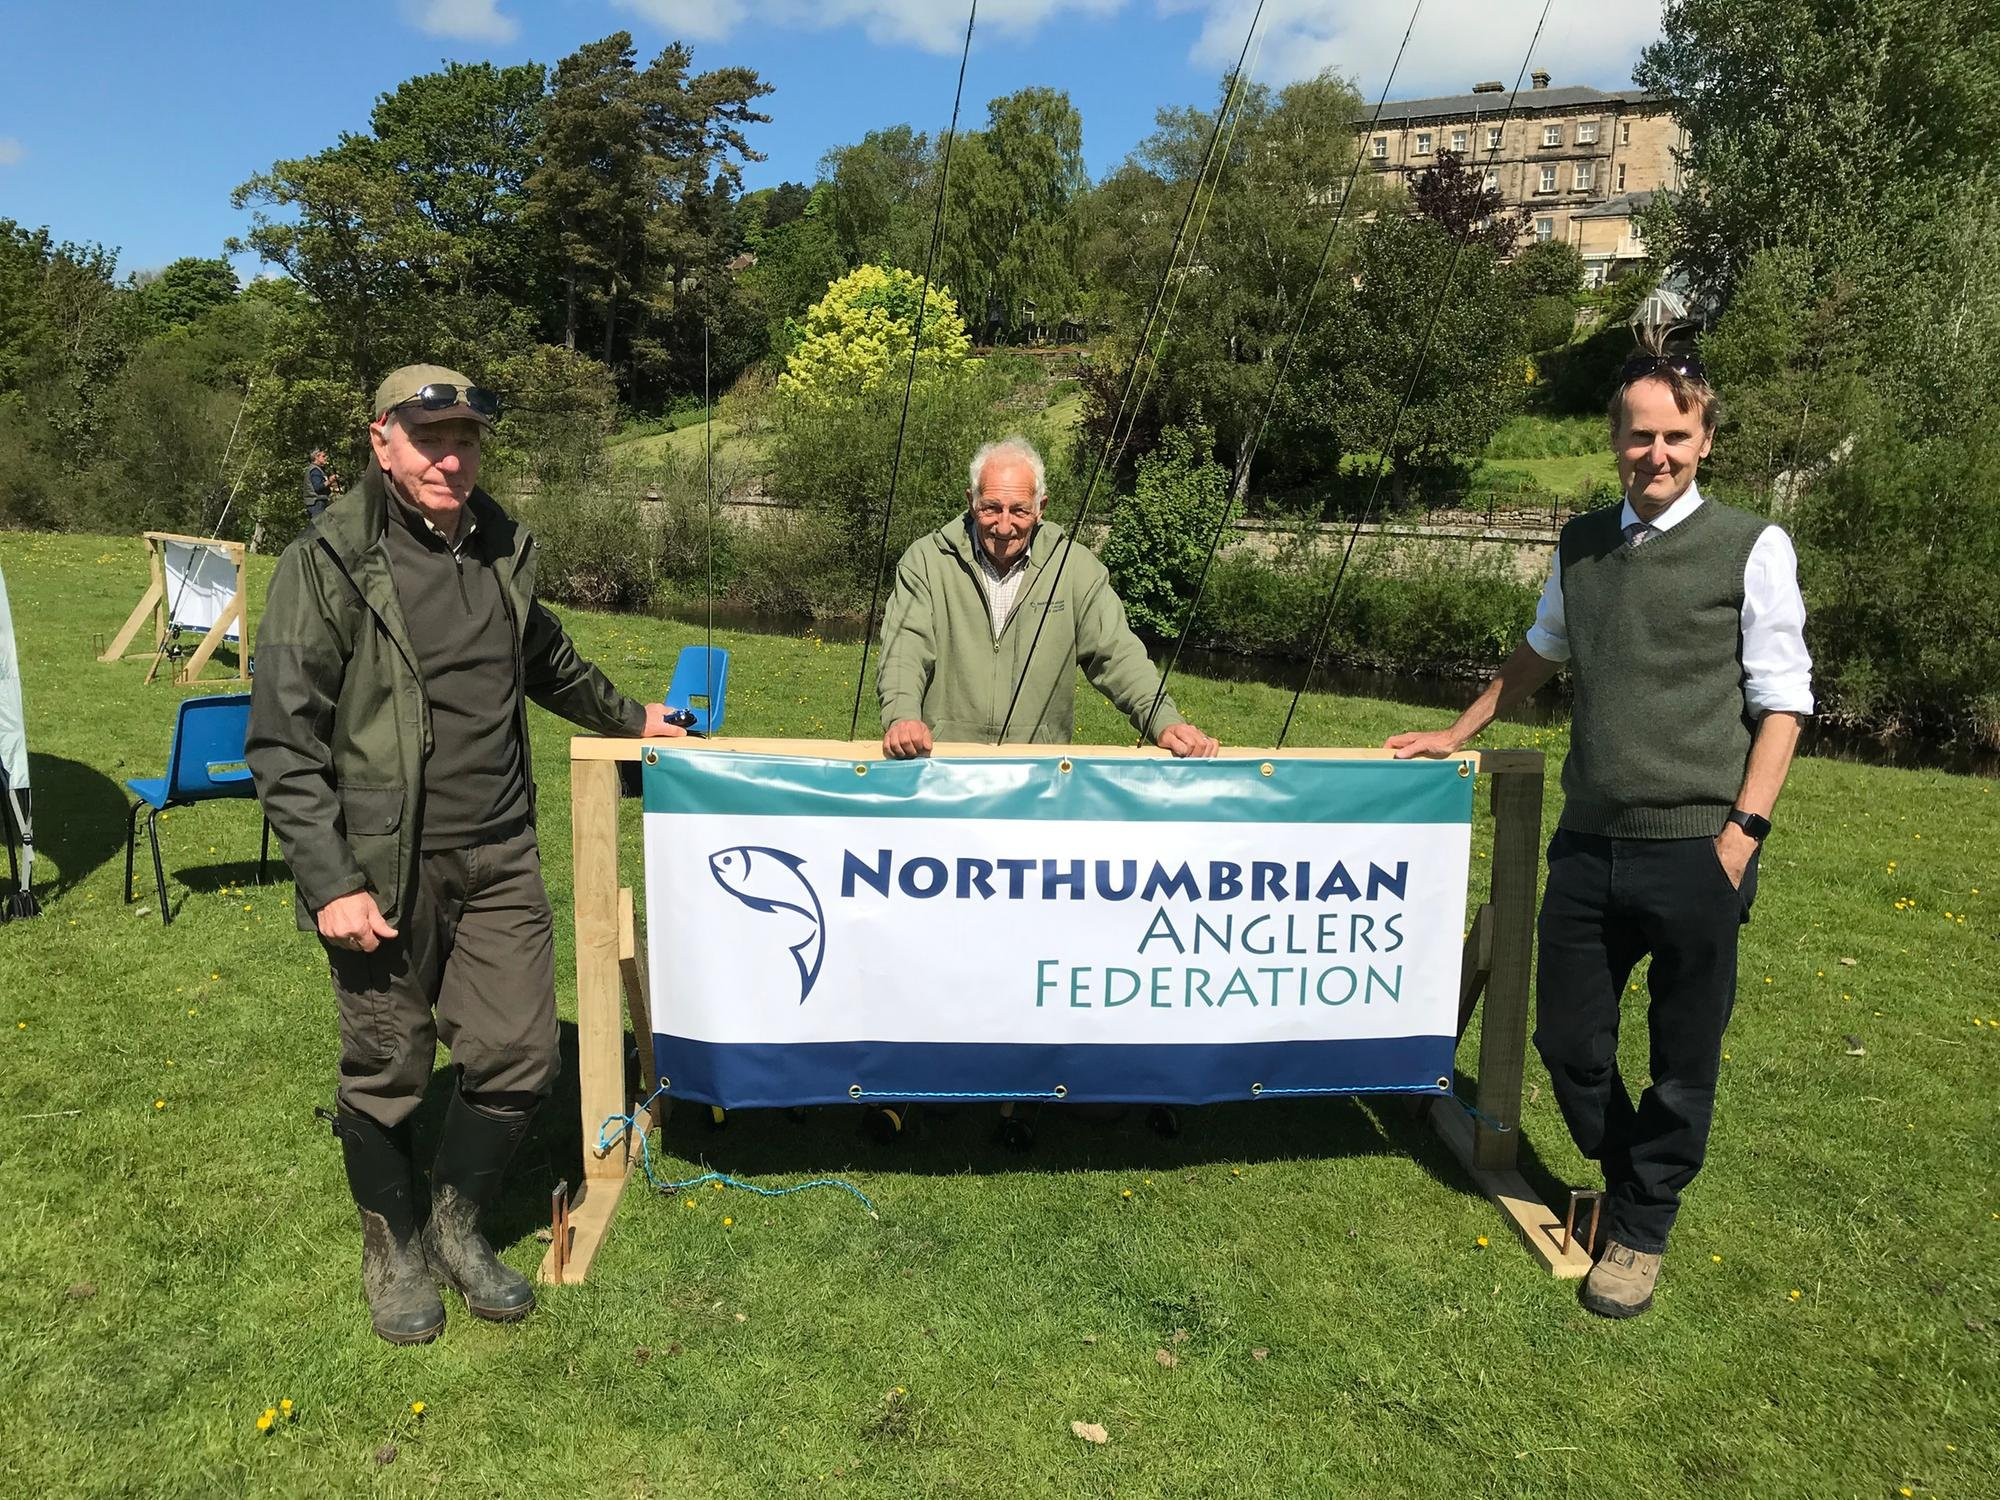 Angling event at Rothbury gets rookies hooked